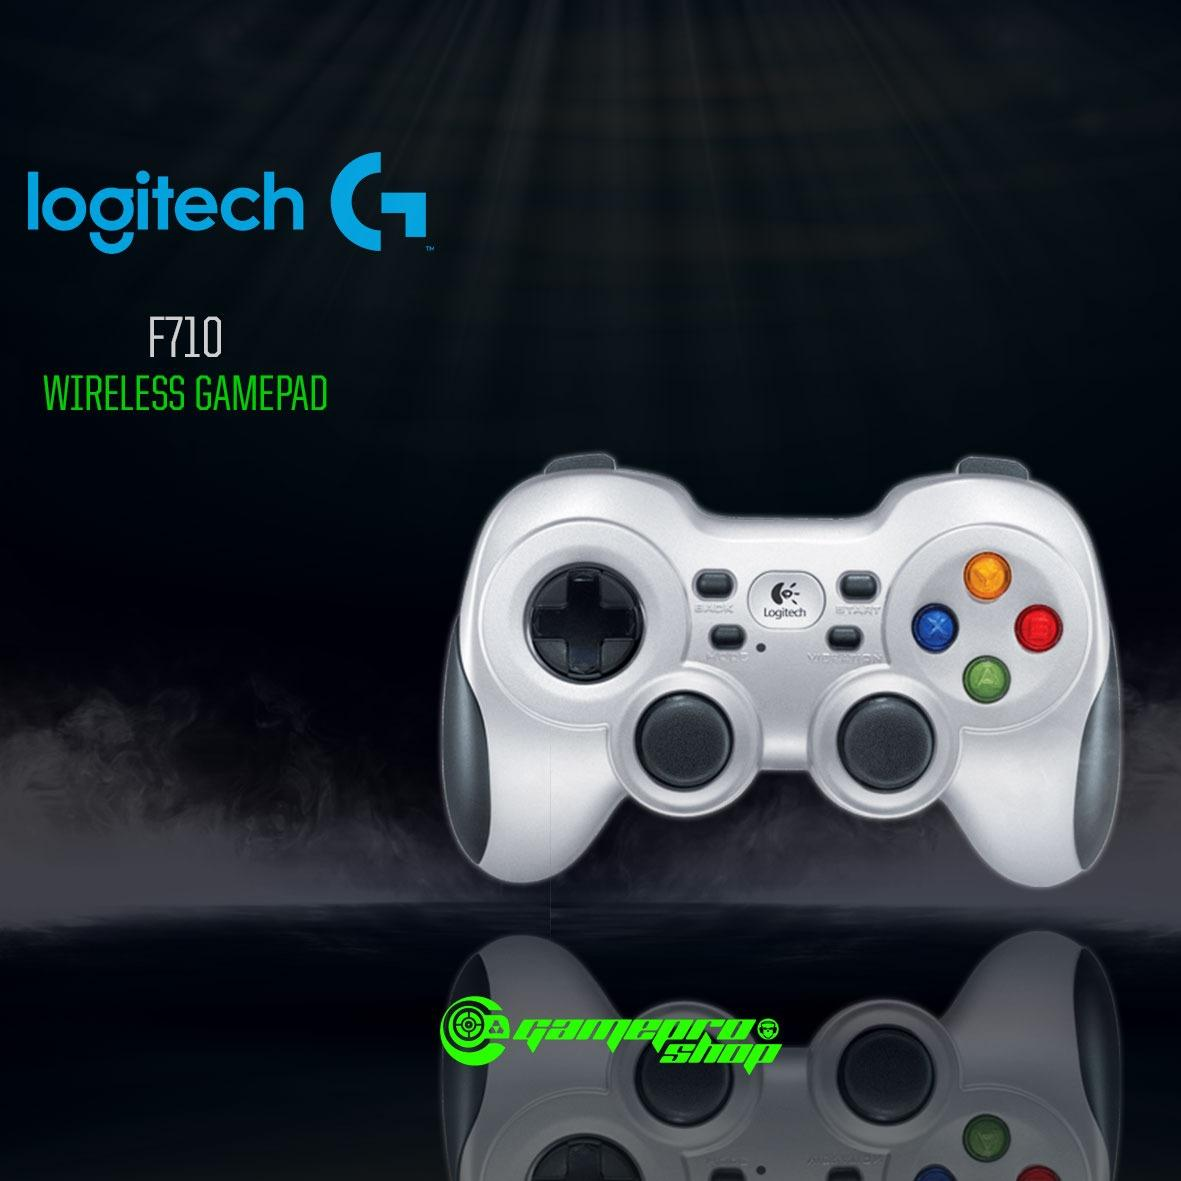 Logitech F710 Wireless Gamepad Gaming Controller *HAJI PROMO*